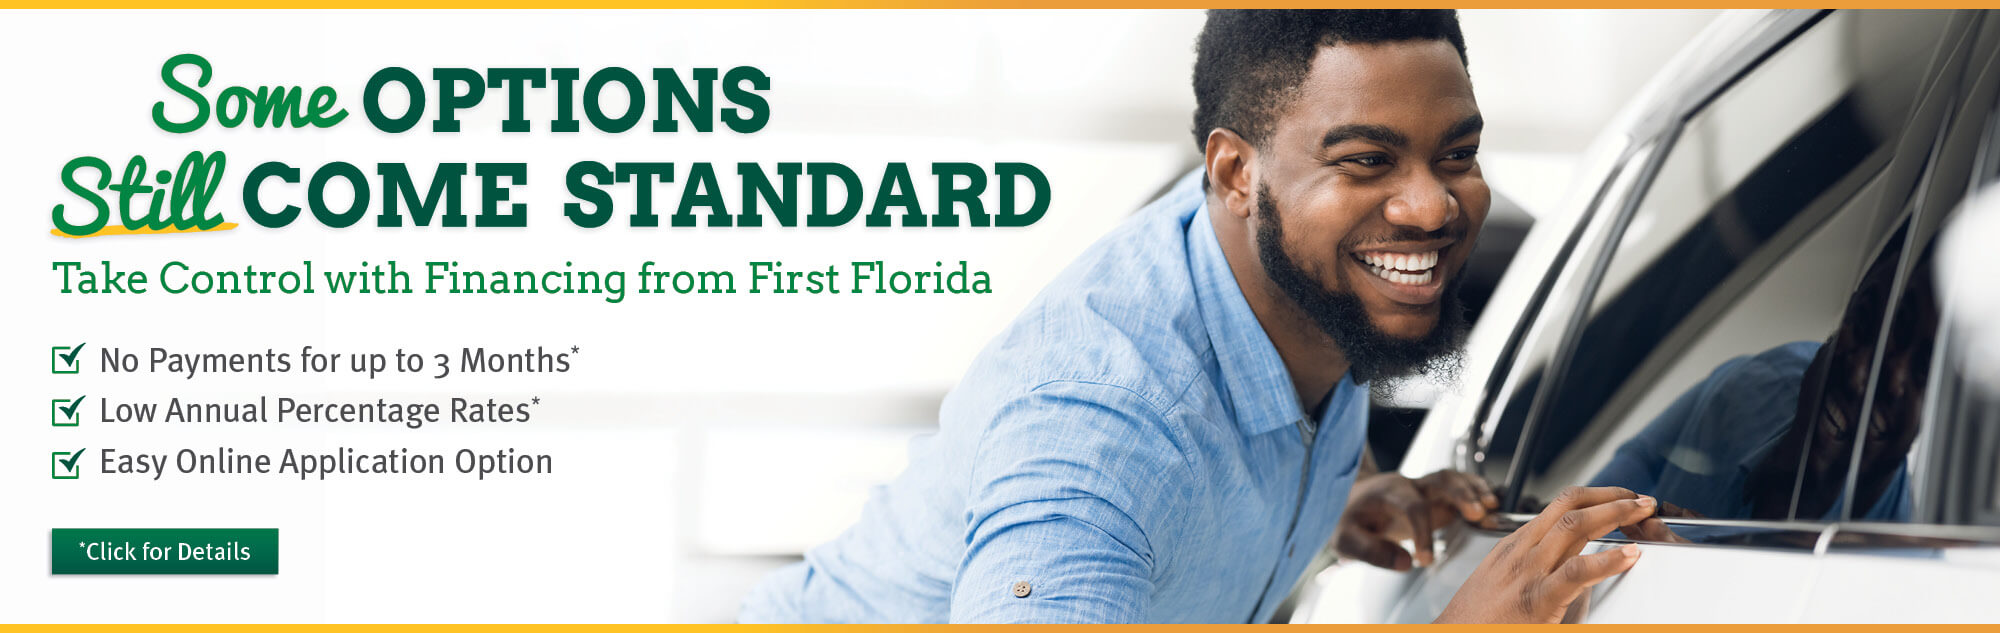 Some options still come standard. Take control with financing from First Florida. Feel confident with an auto loan featuring no payment for up to three months*. Low annual percentage rates*, and also an easy online application option. Click for details*.